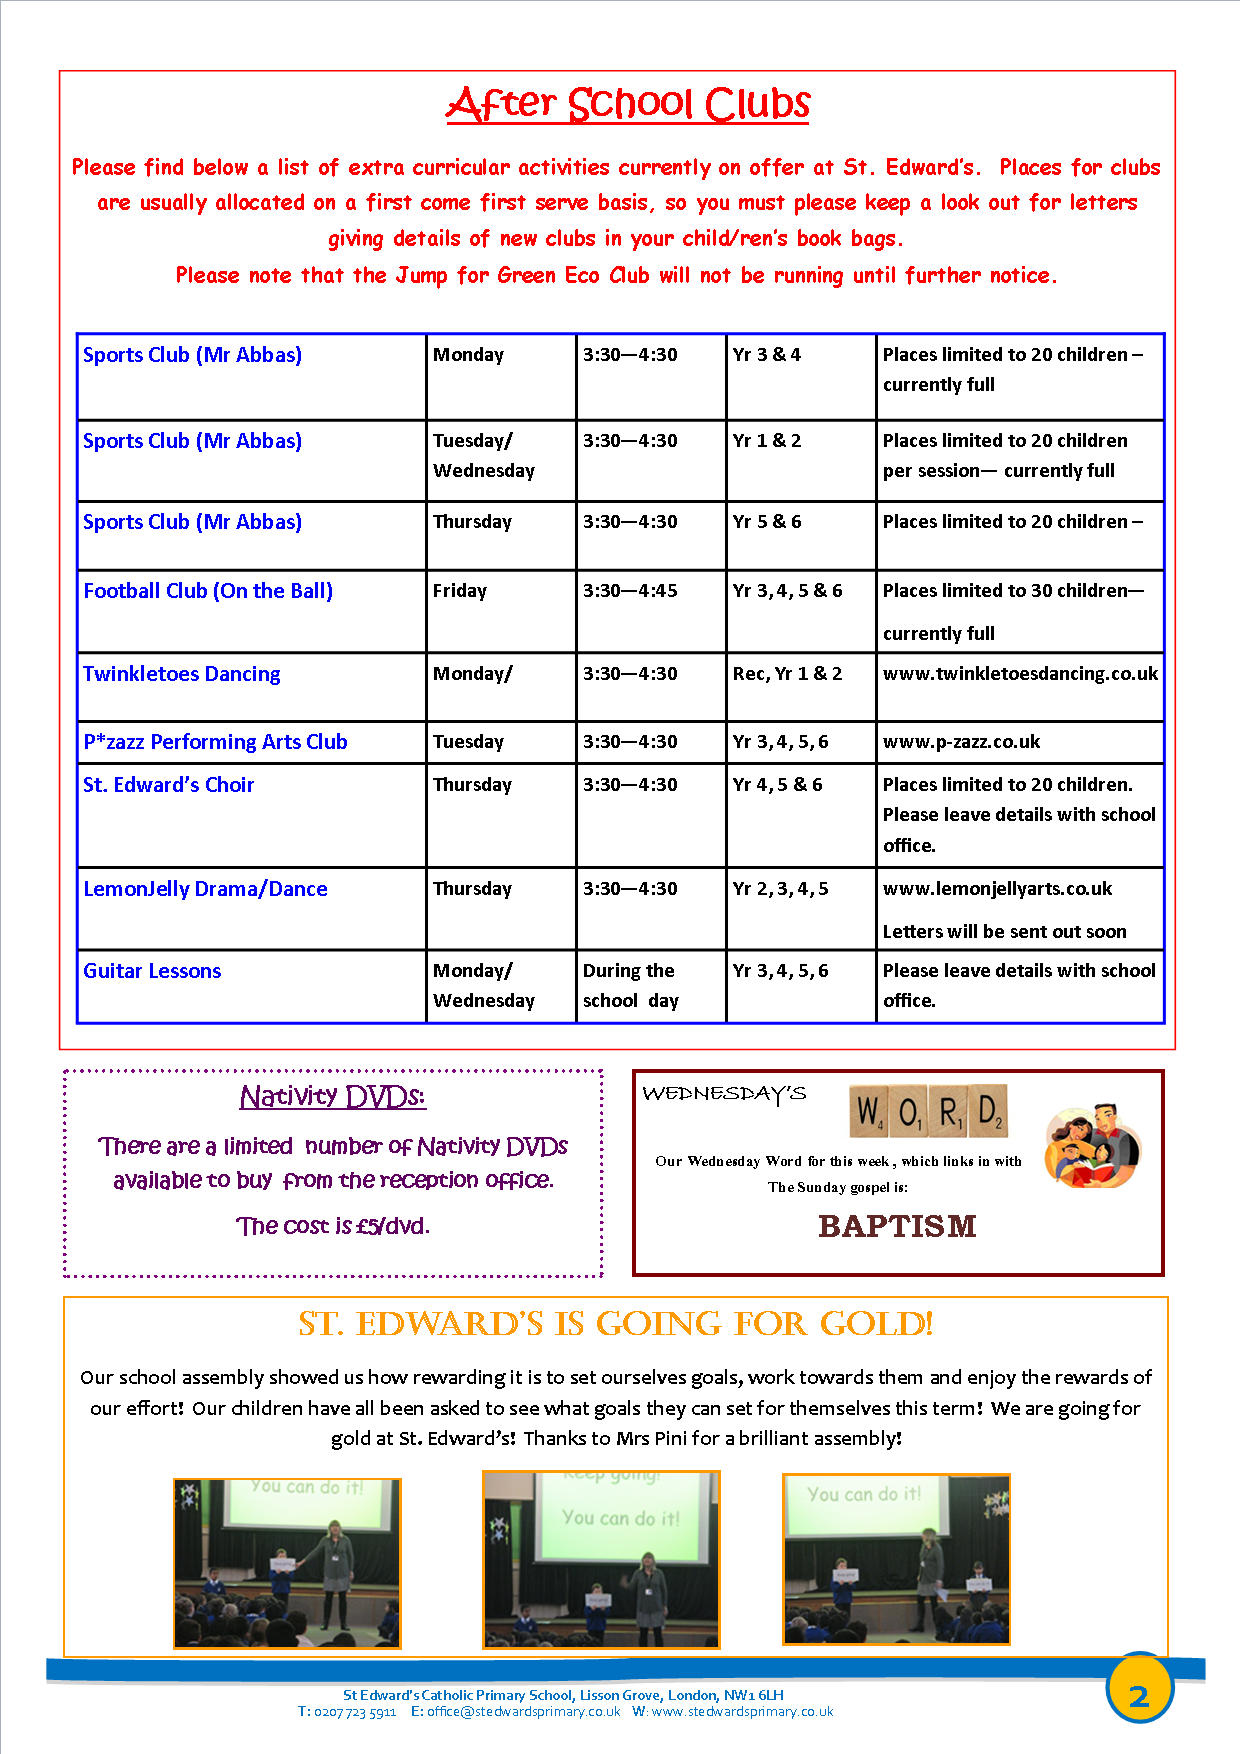 2St Edward's Newsletter Issue 13 12th December 2014.png